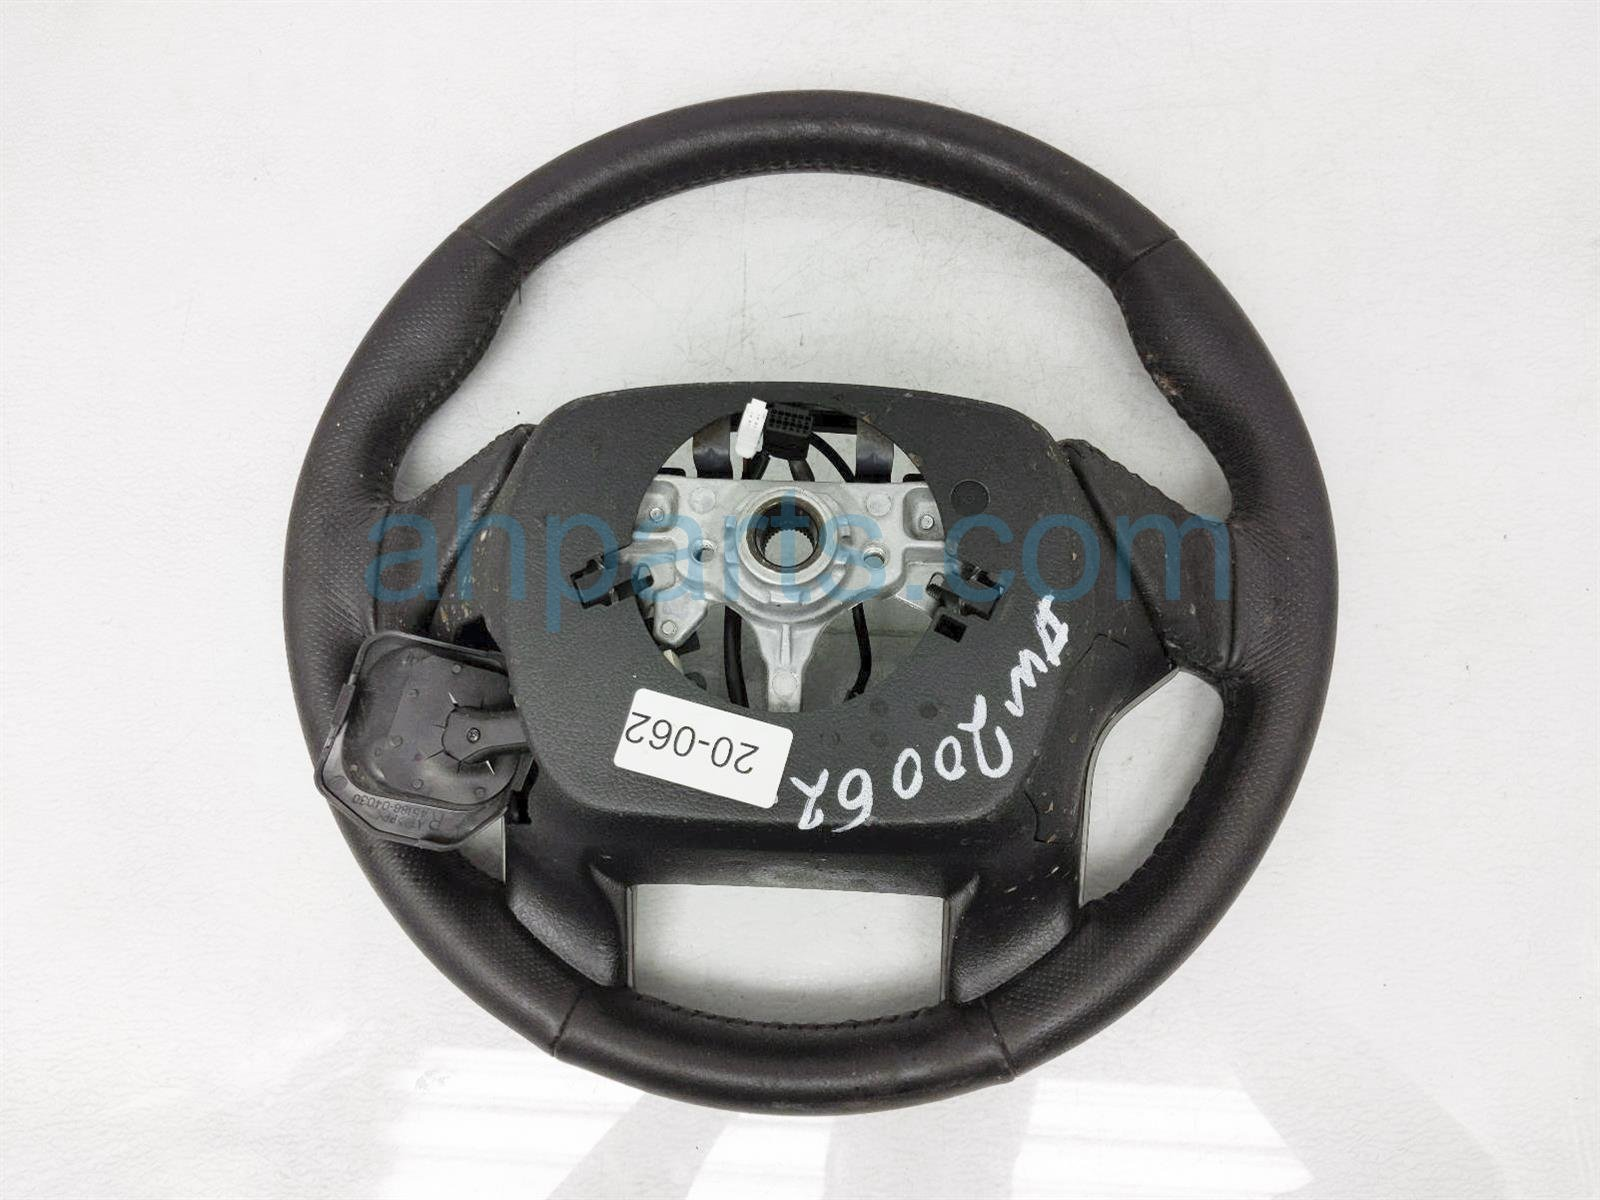 2017 Toyota Tacoma Steering Wheel   Black Leather 45100 04321 C0 Replacement